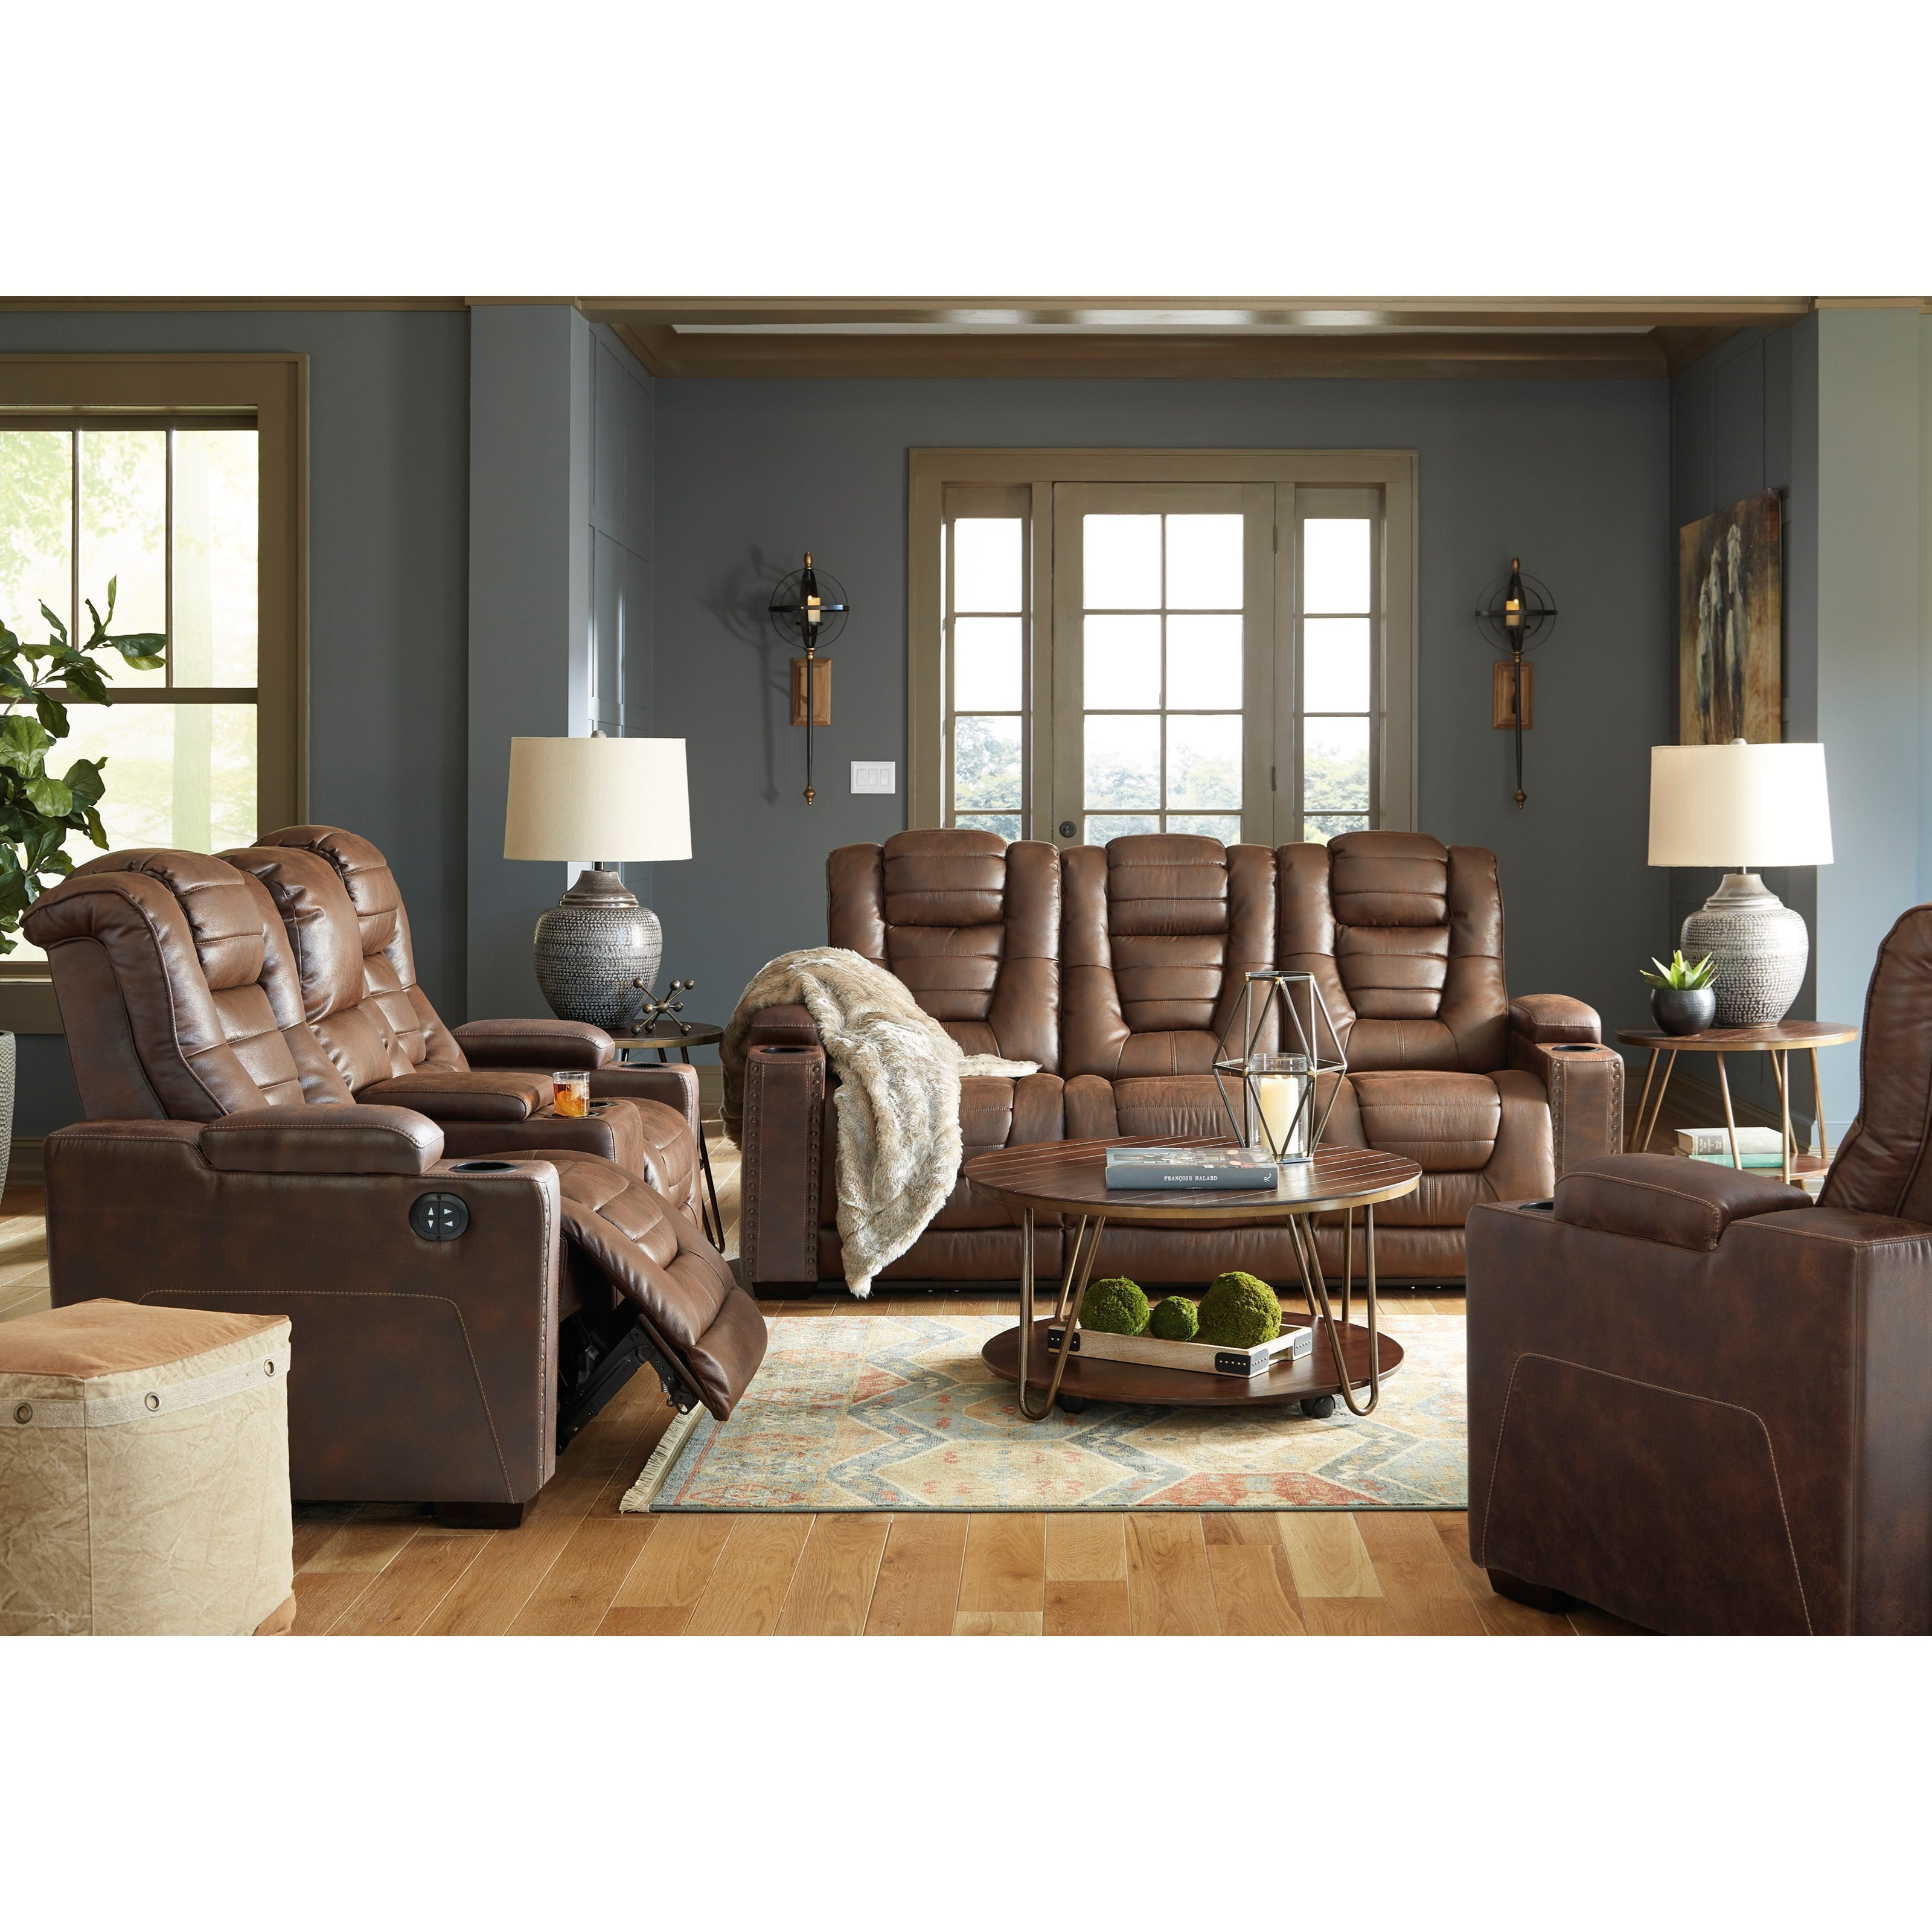 Owner's Box Power Reclining Living Room Group by Signature Design by Ashley at Northeast Factory Direct